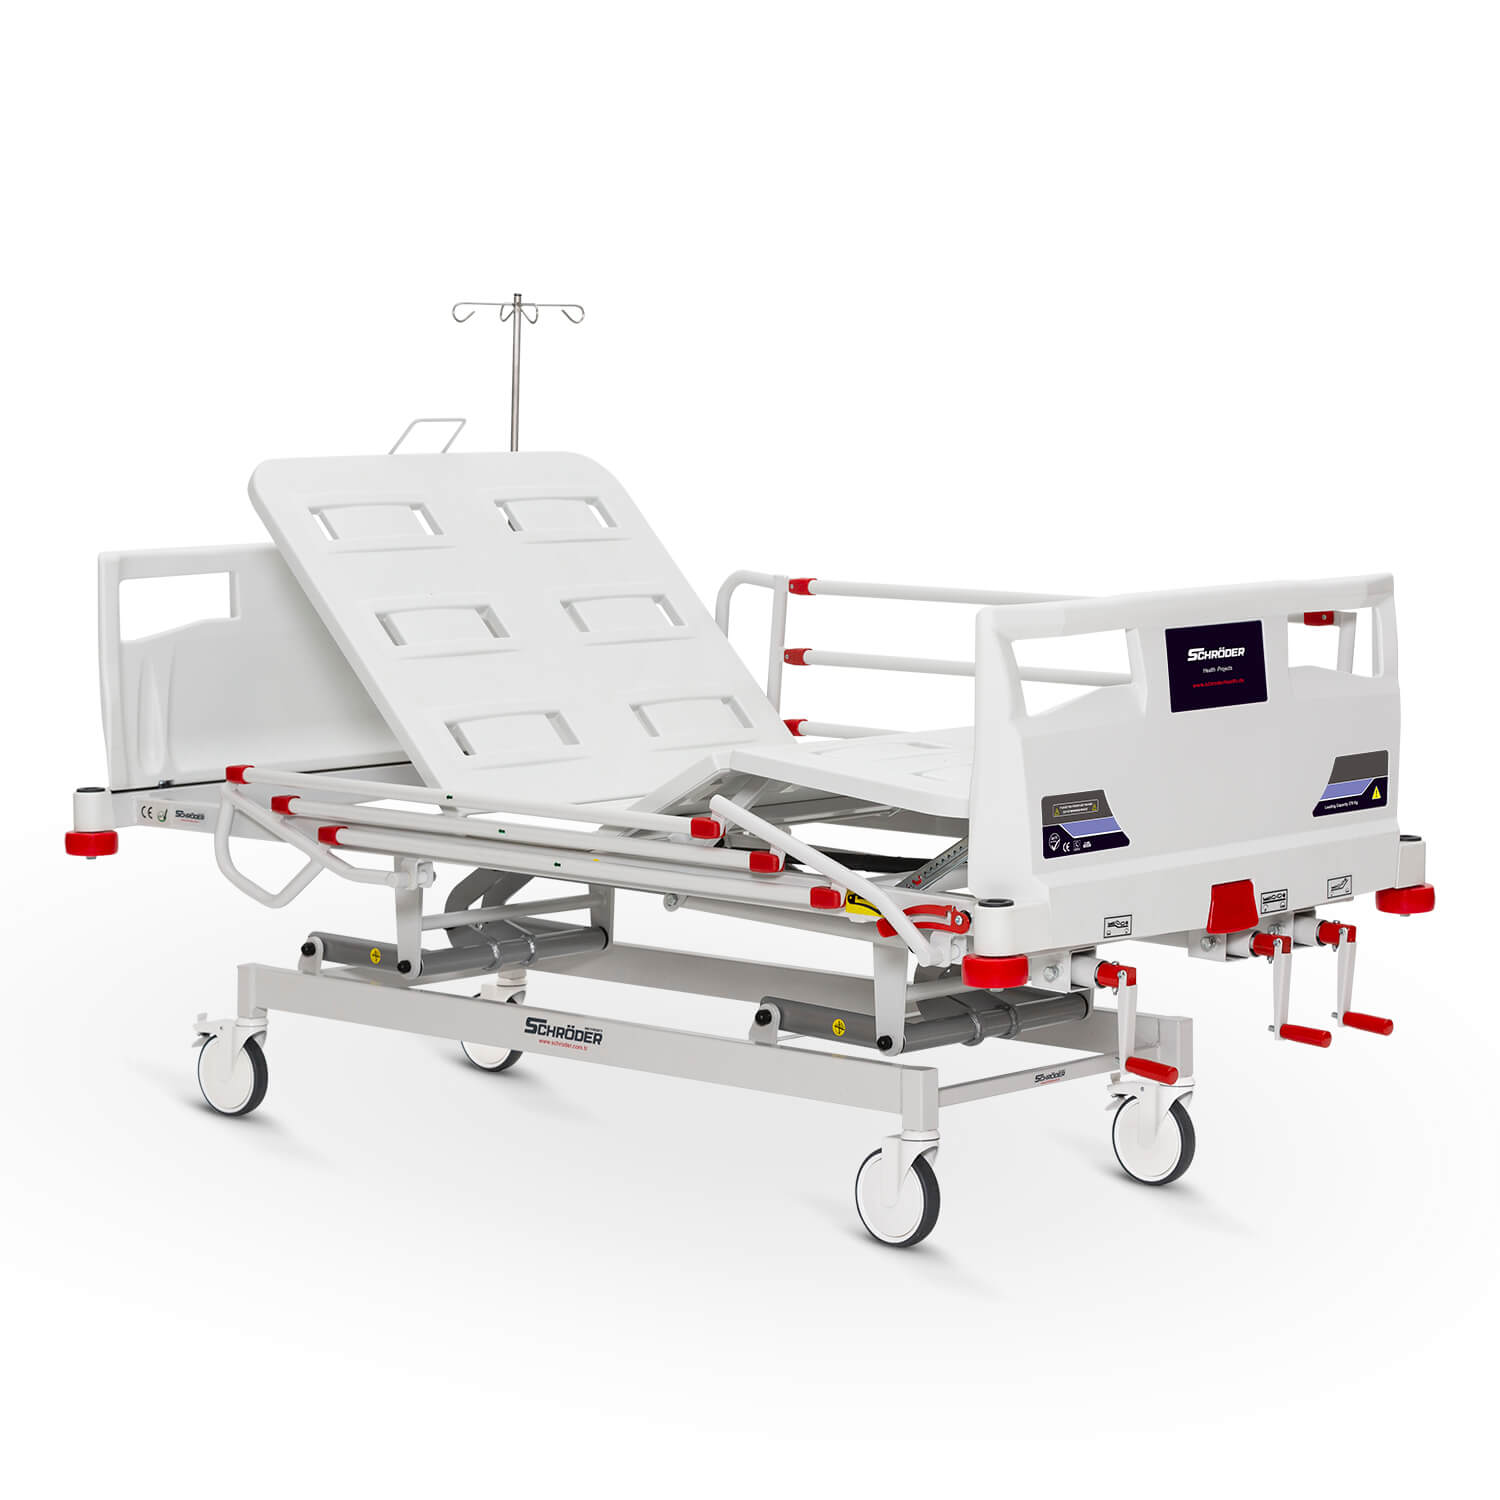 Mechanical Operated Hospital Bed, 3 Cranks